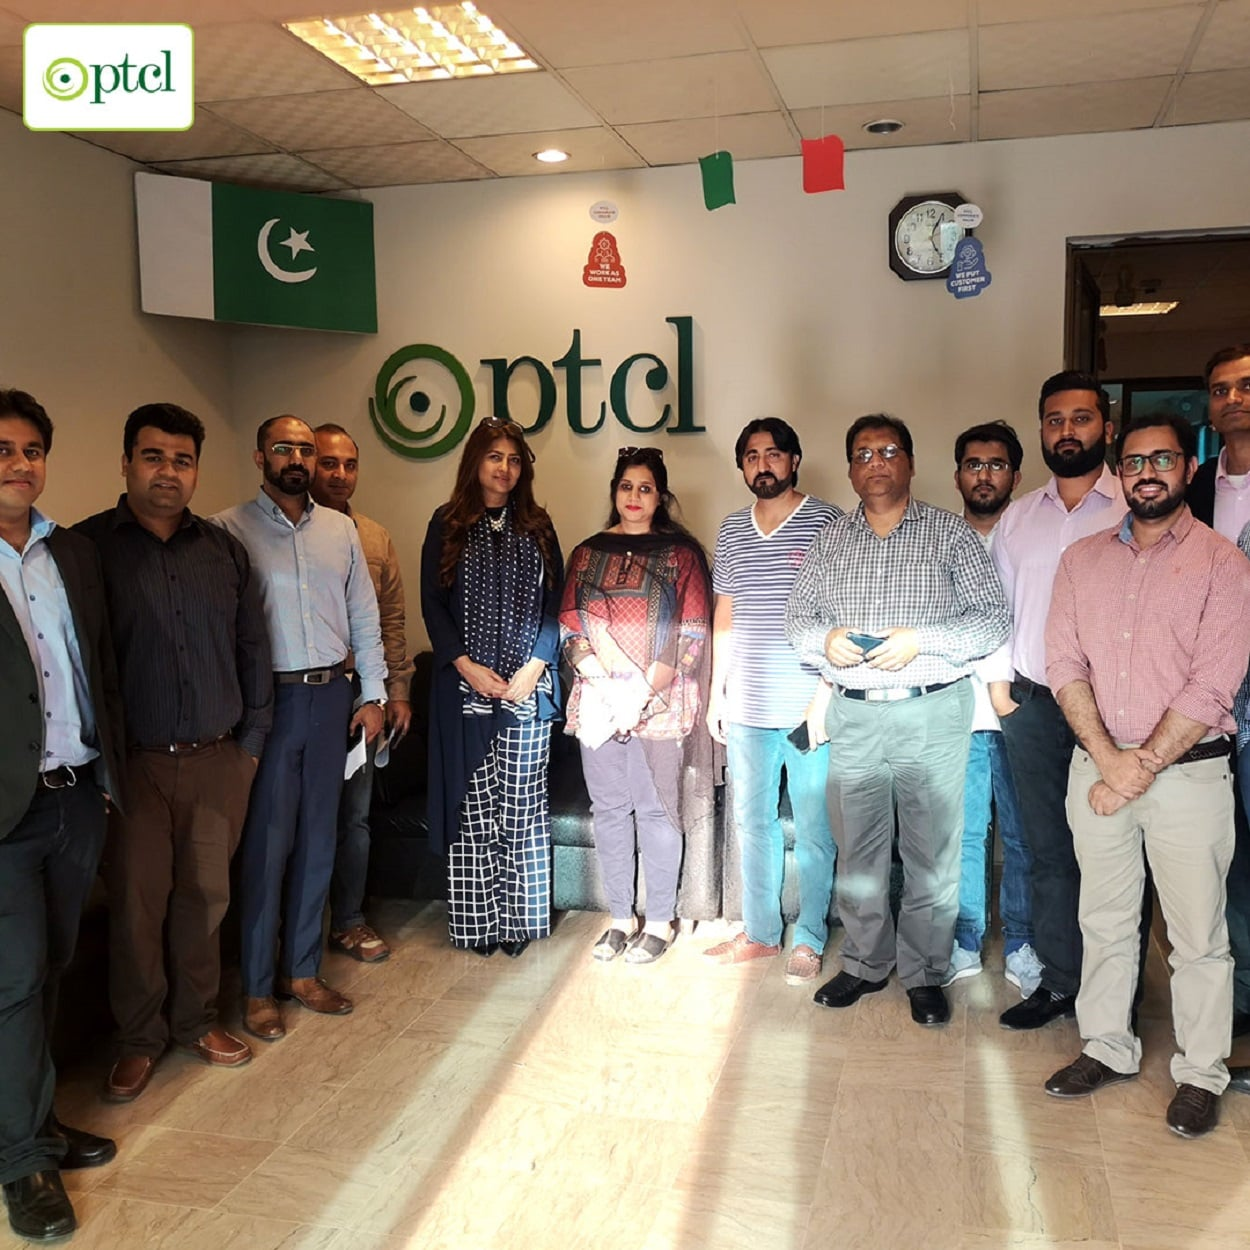 Digital Transformation with PTCL Smart Cloud solutions & Data Centers